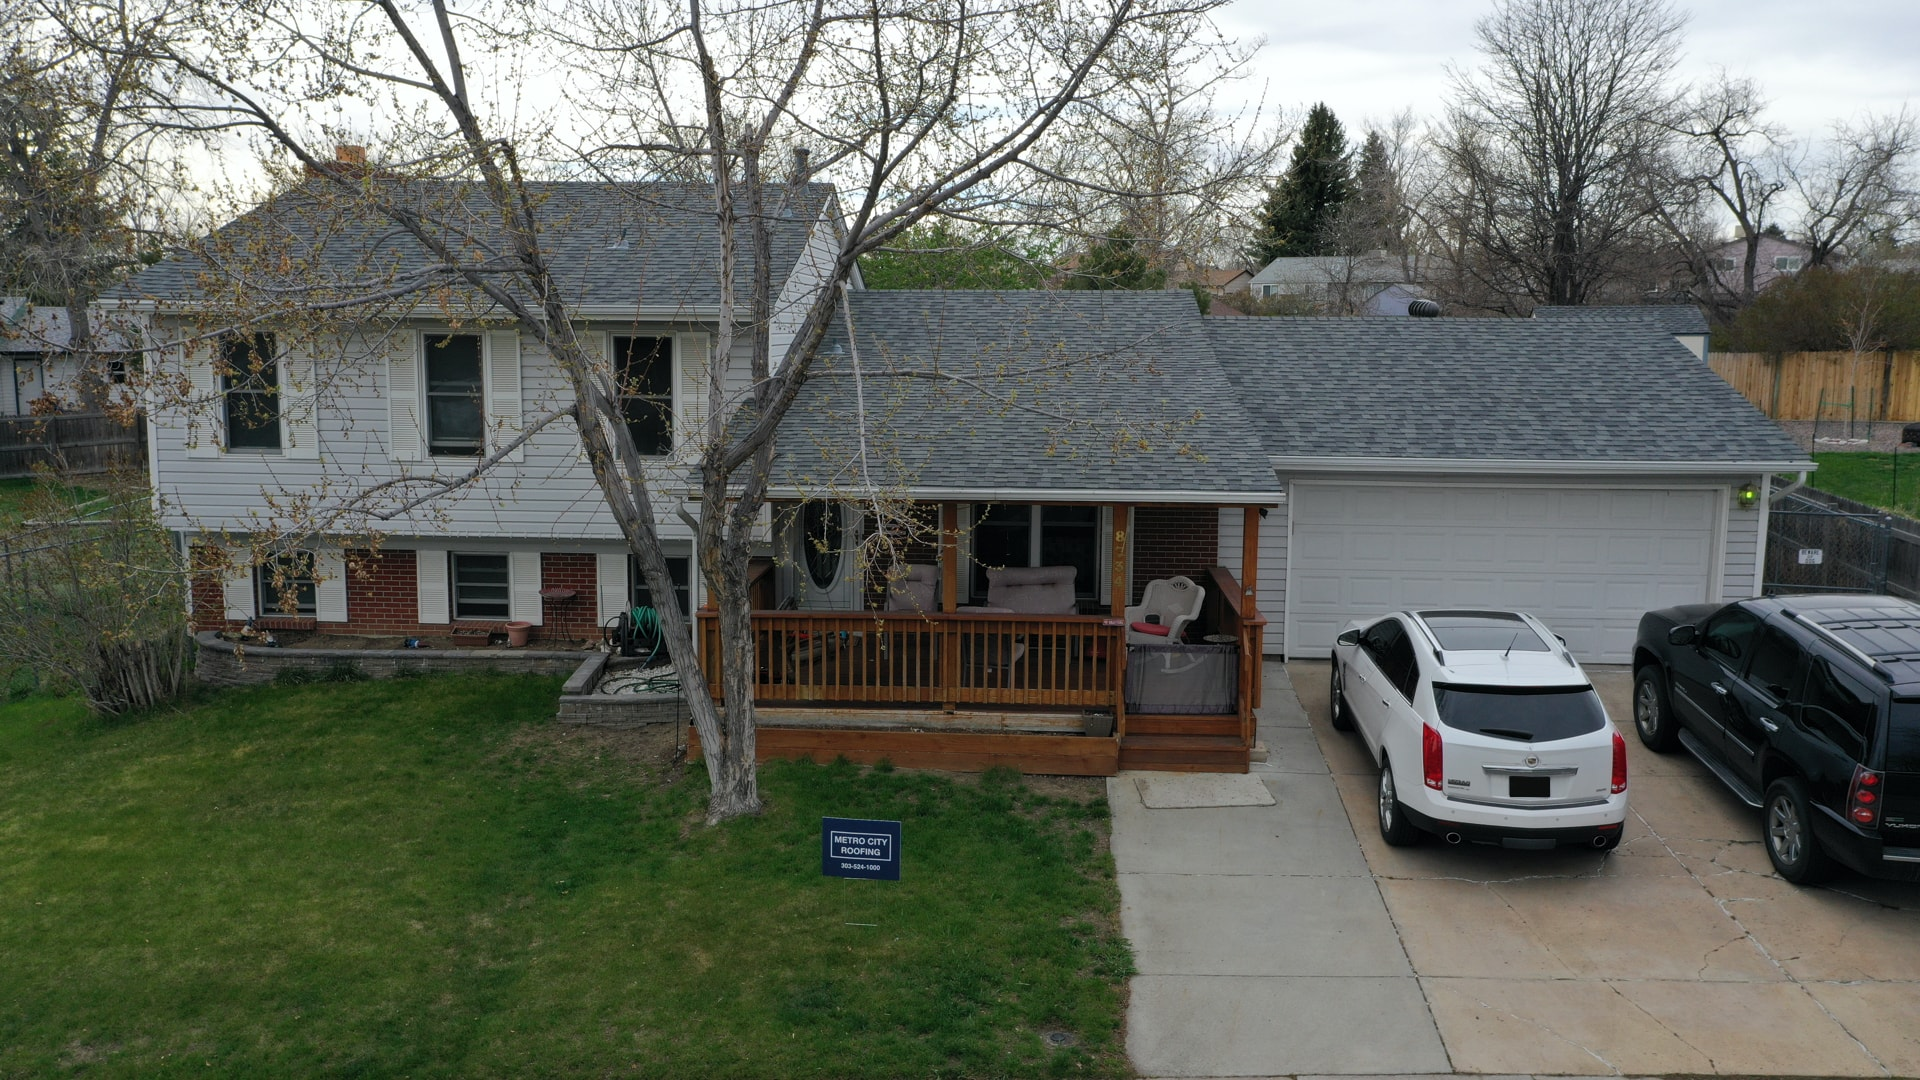 Gray, ranch style home with brown wood front porch in Westminster, Colorado with blue Metro City Roofing sign in the foreground